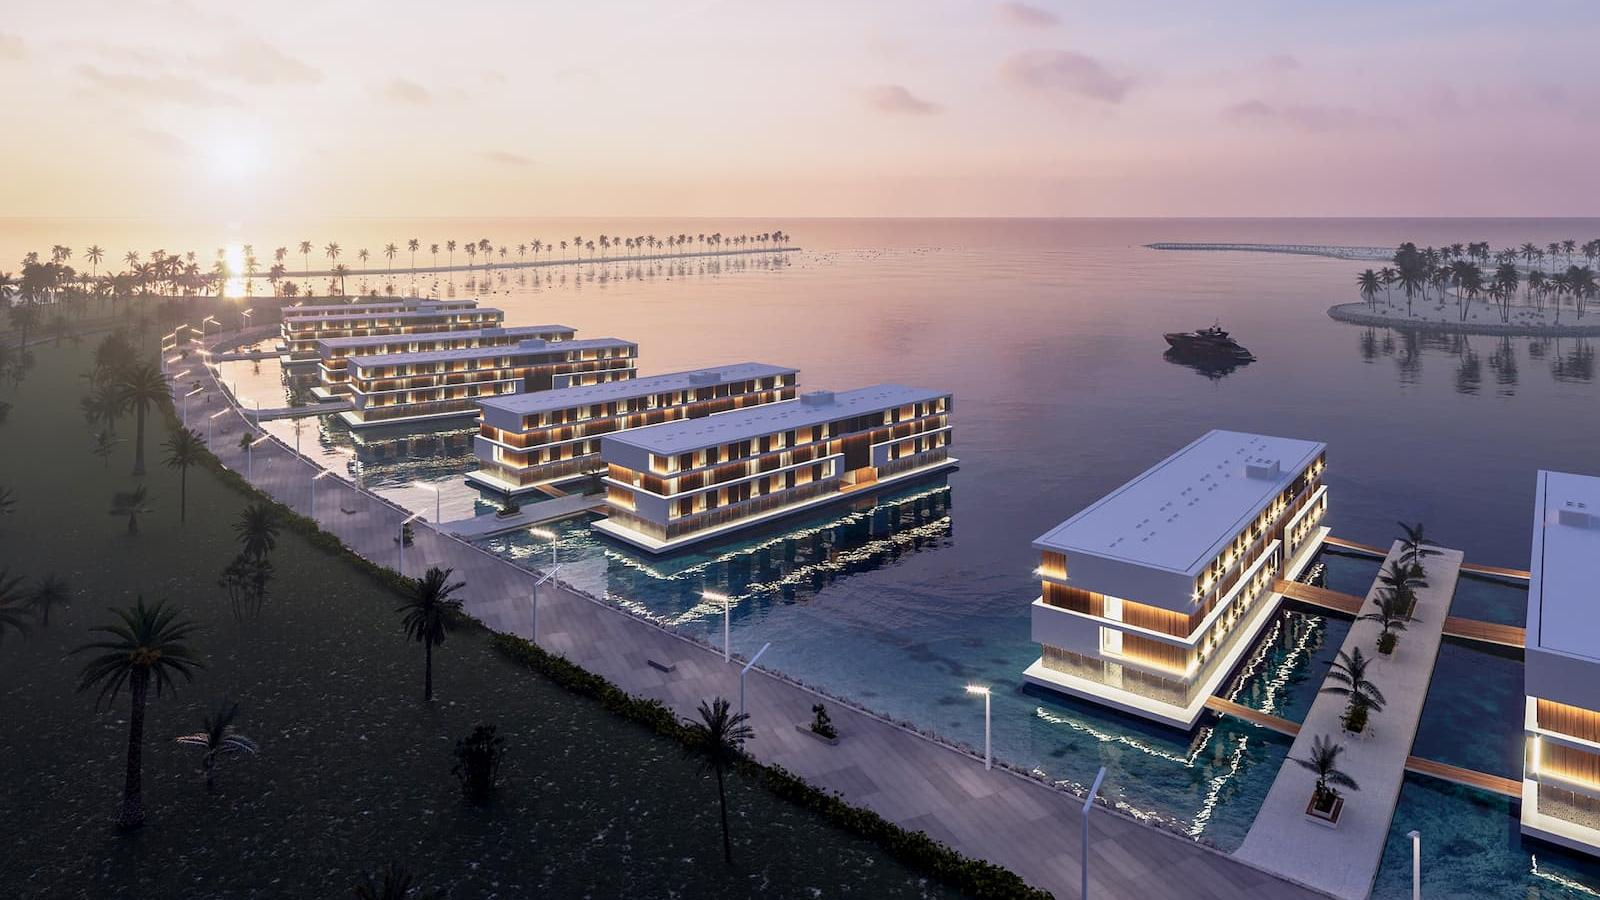 Floating hotels to accommodate 2022 FIFA World Cup fans in Qatar